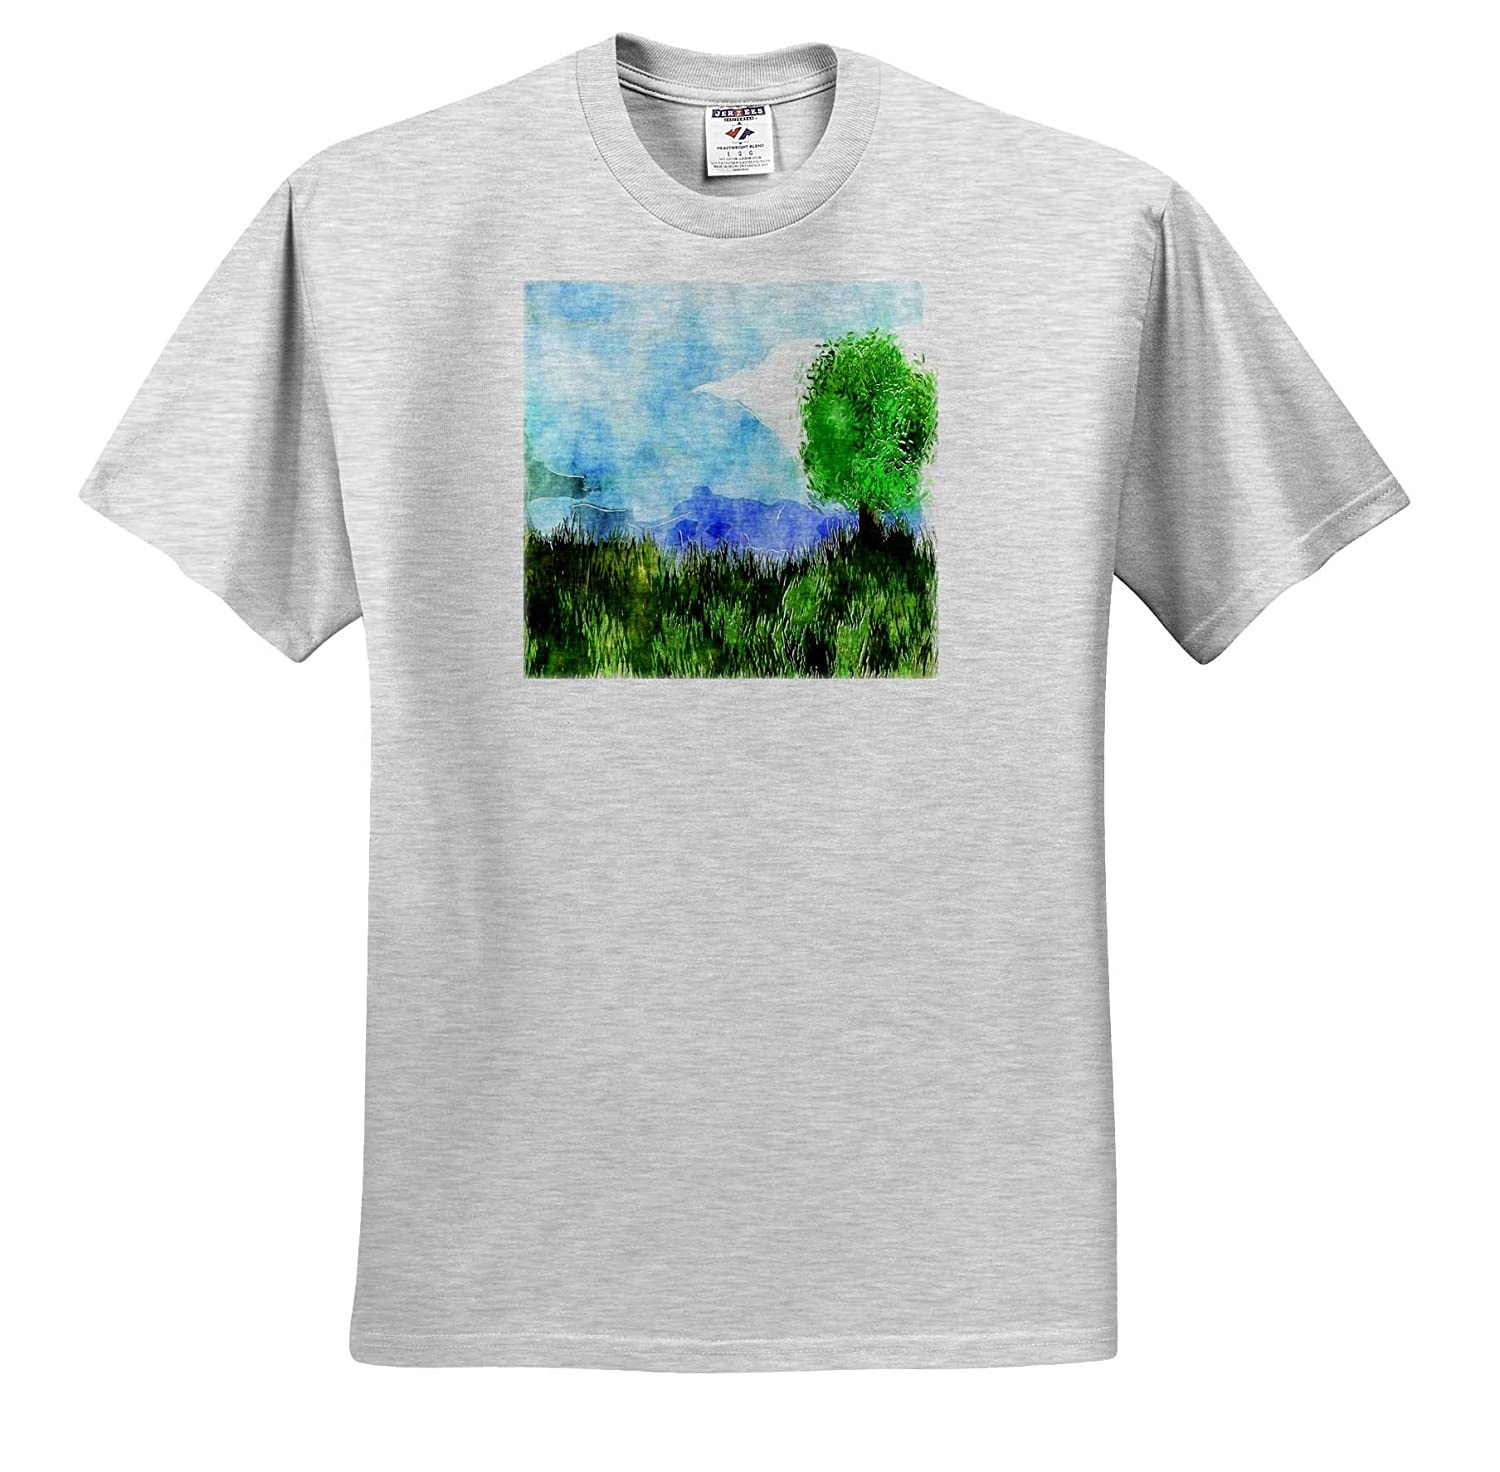 Watercolor Art Image of Fields of Green with Violet Mountains and Tree Art T-Shirts 3dRose Lens Art by Florene